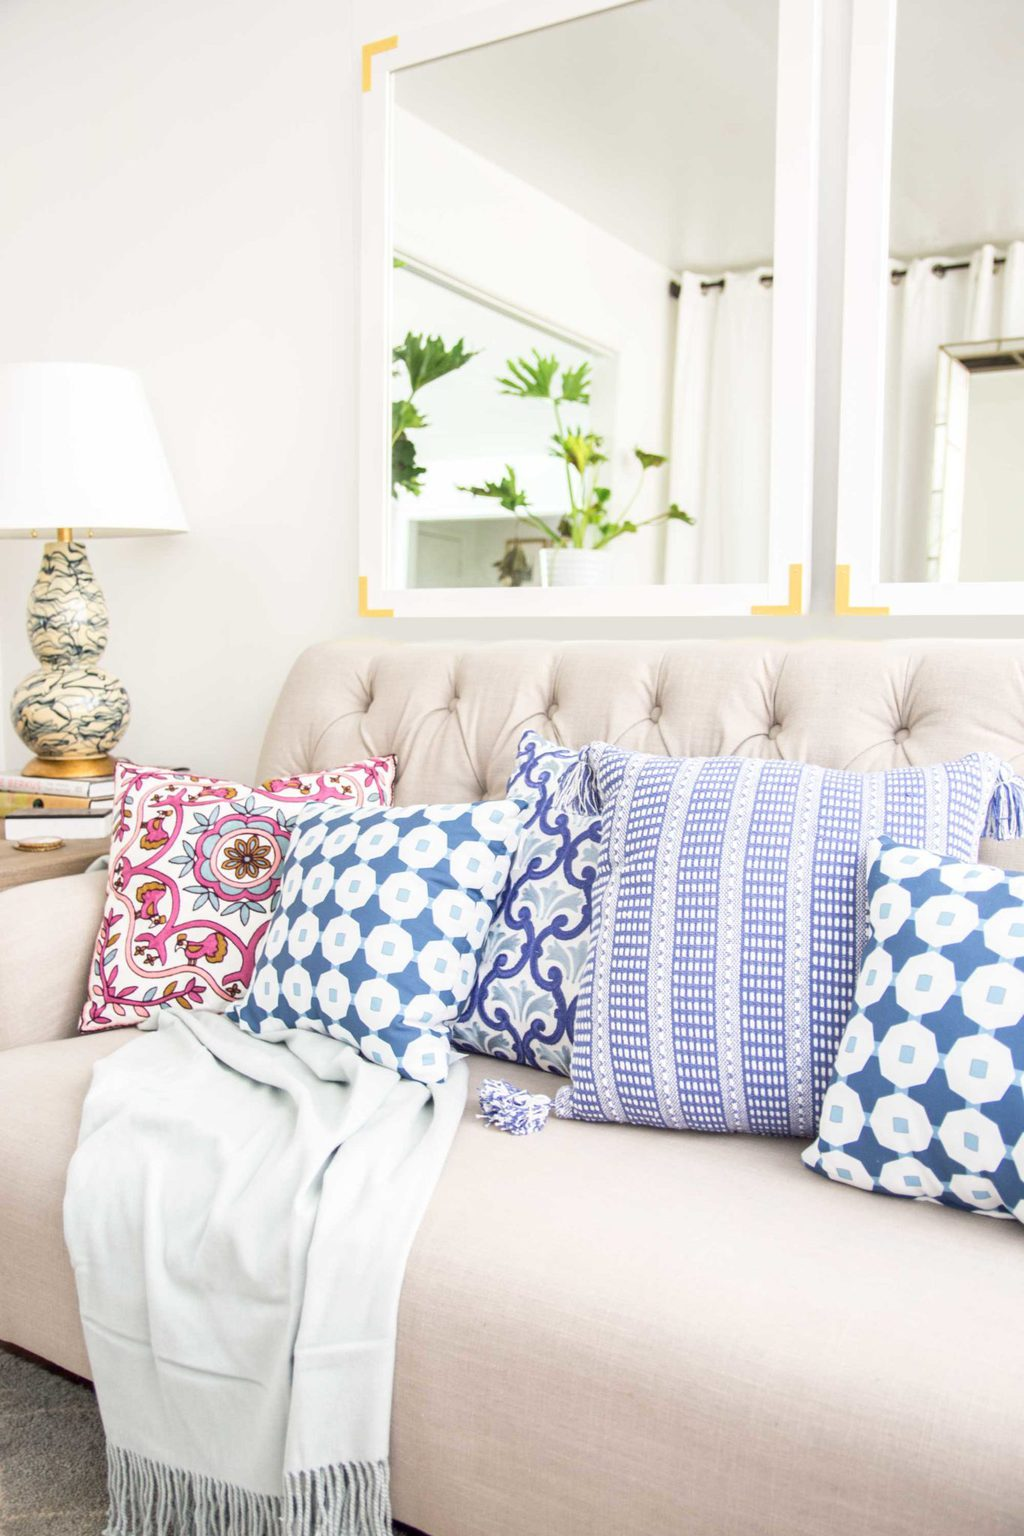 Colorful patterned throw pillows on a tufted sofa in the living room on Thou Swell @thouswellblog